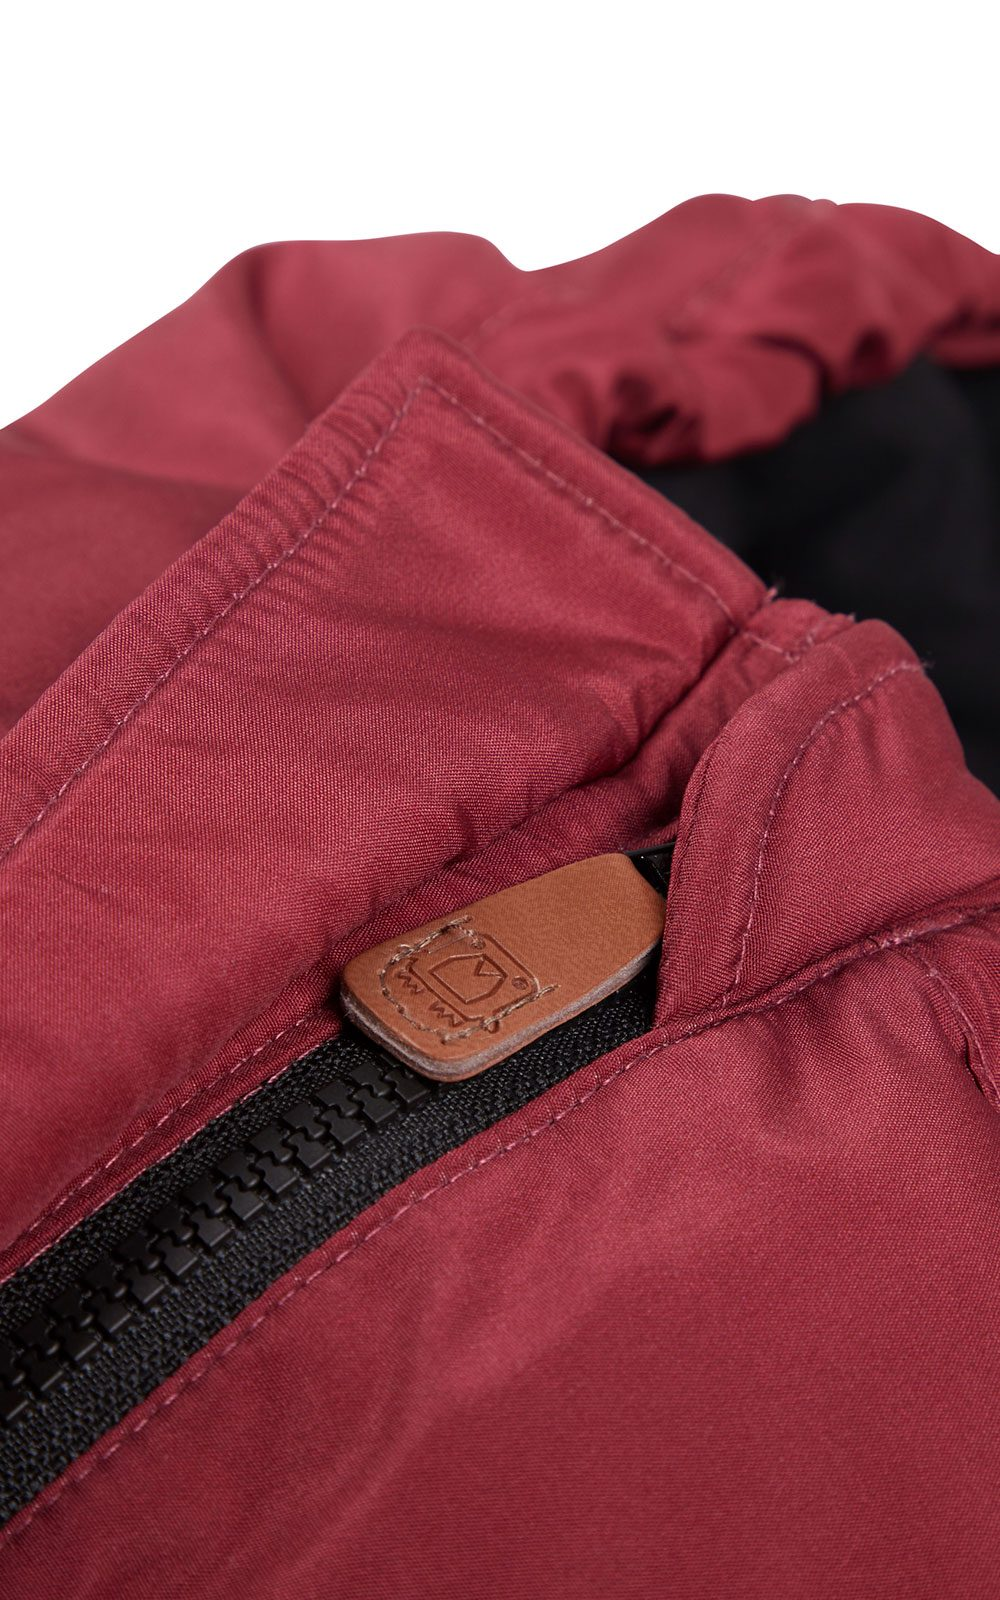 Voksi_Move_sleepingbag_Ruby-Red_Emergency_zipper